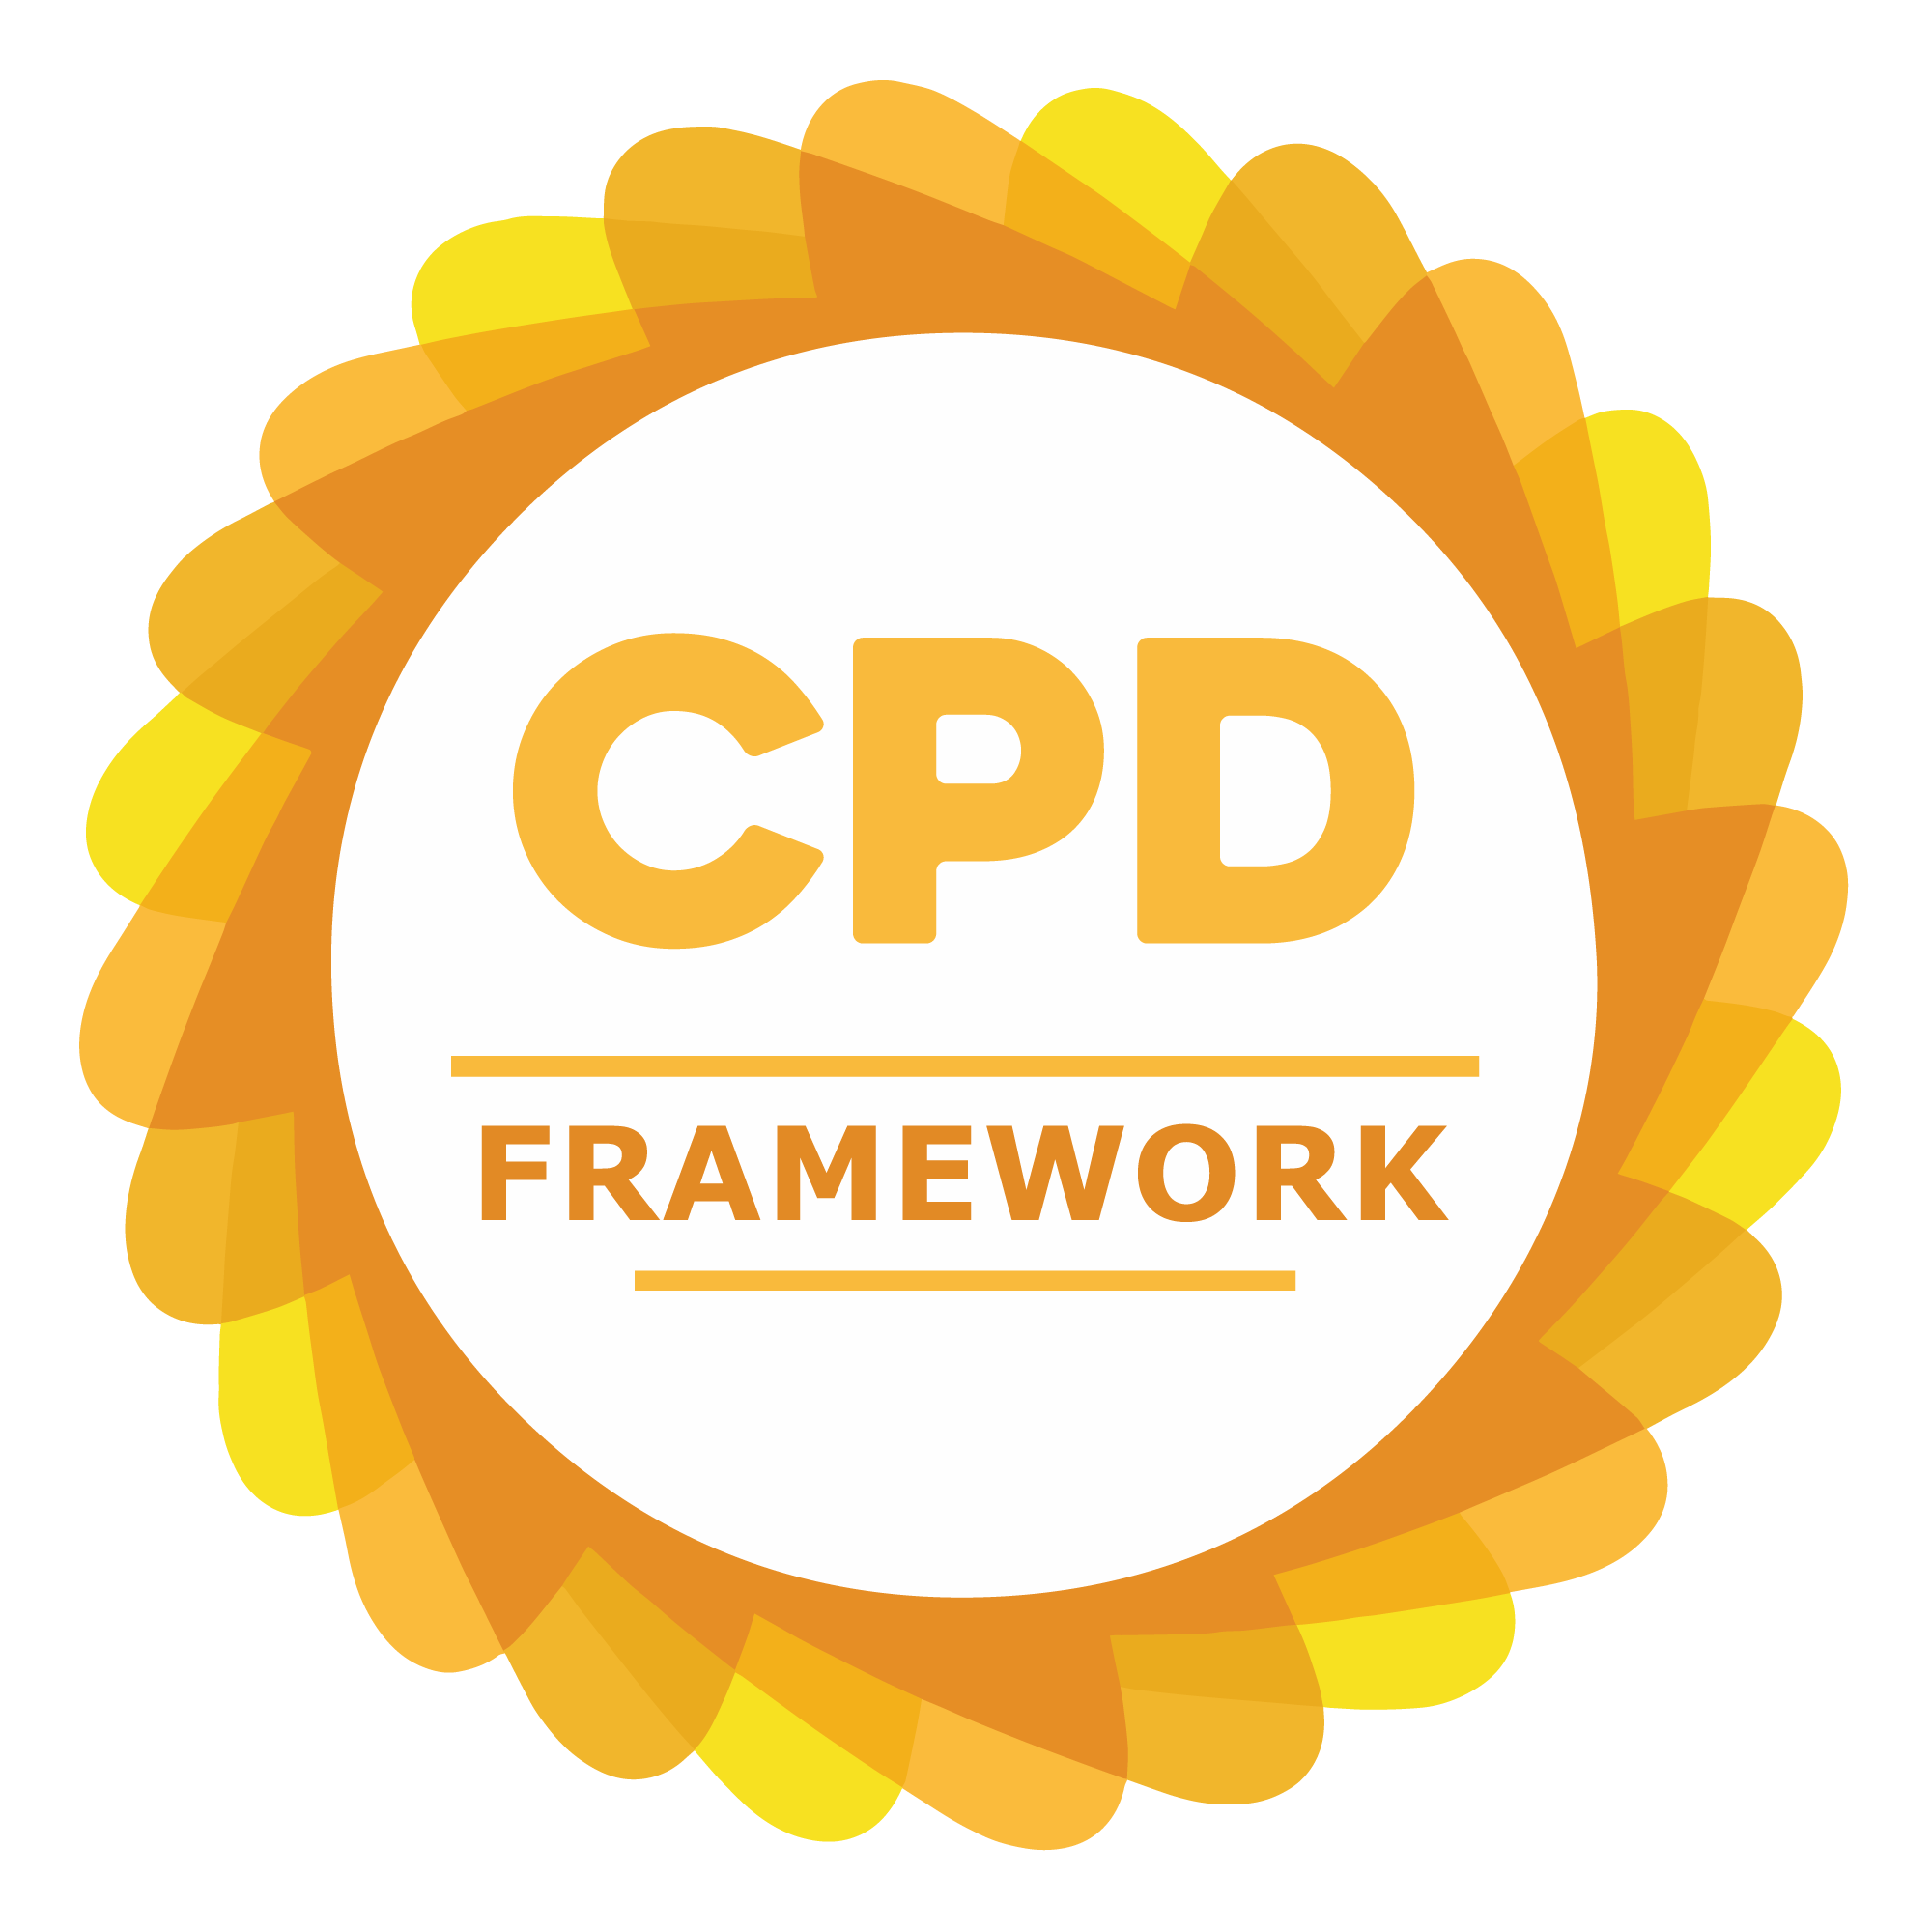 Circular CPD Group logo with orange and yellow border. Contains text: CPD FRAMEWORK.